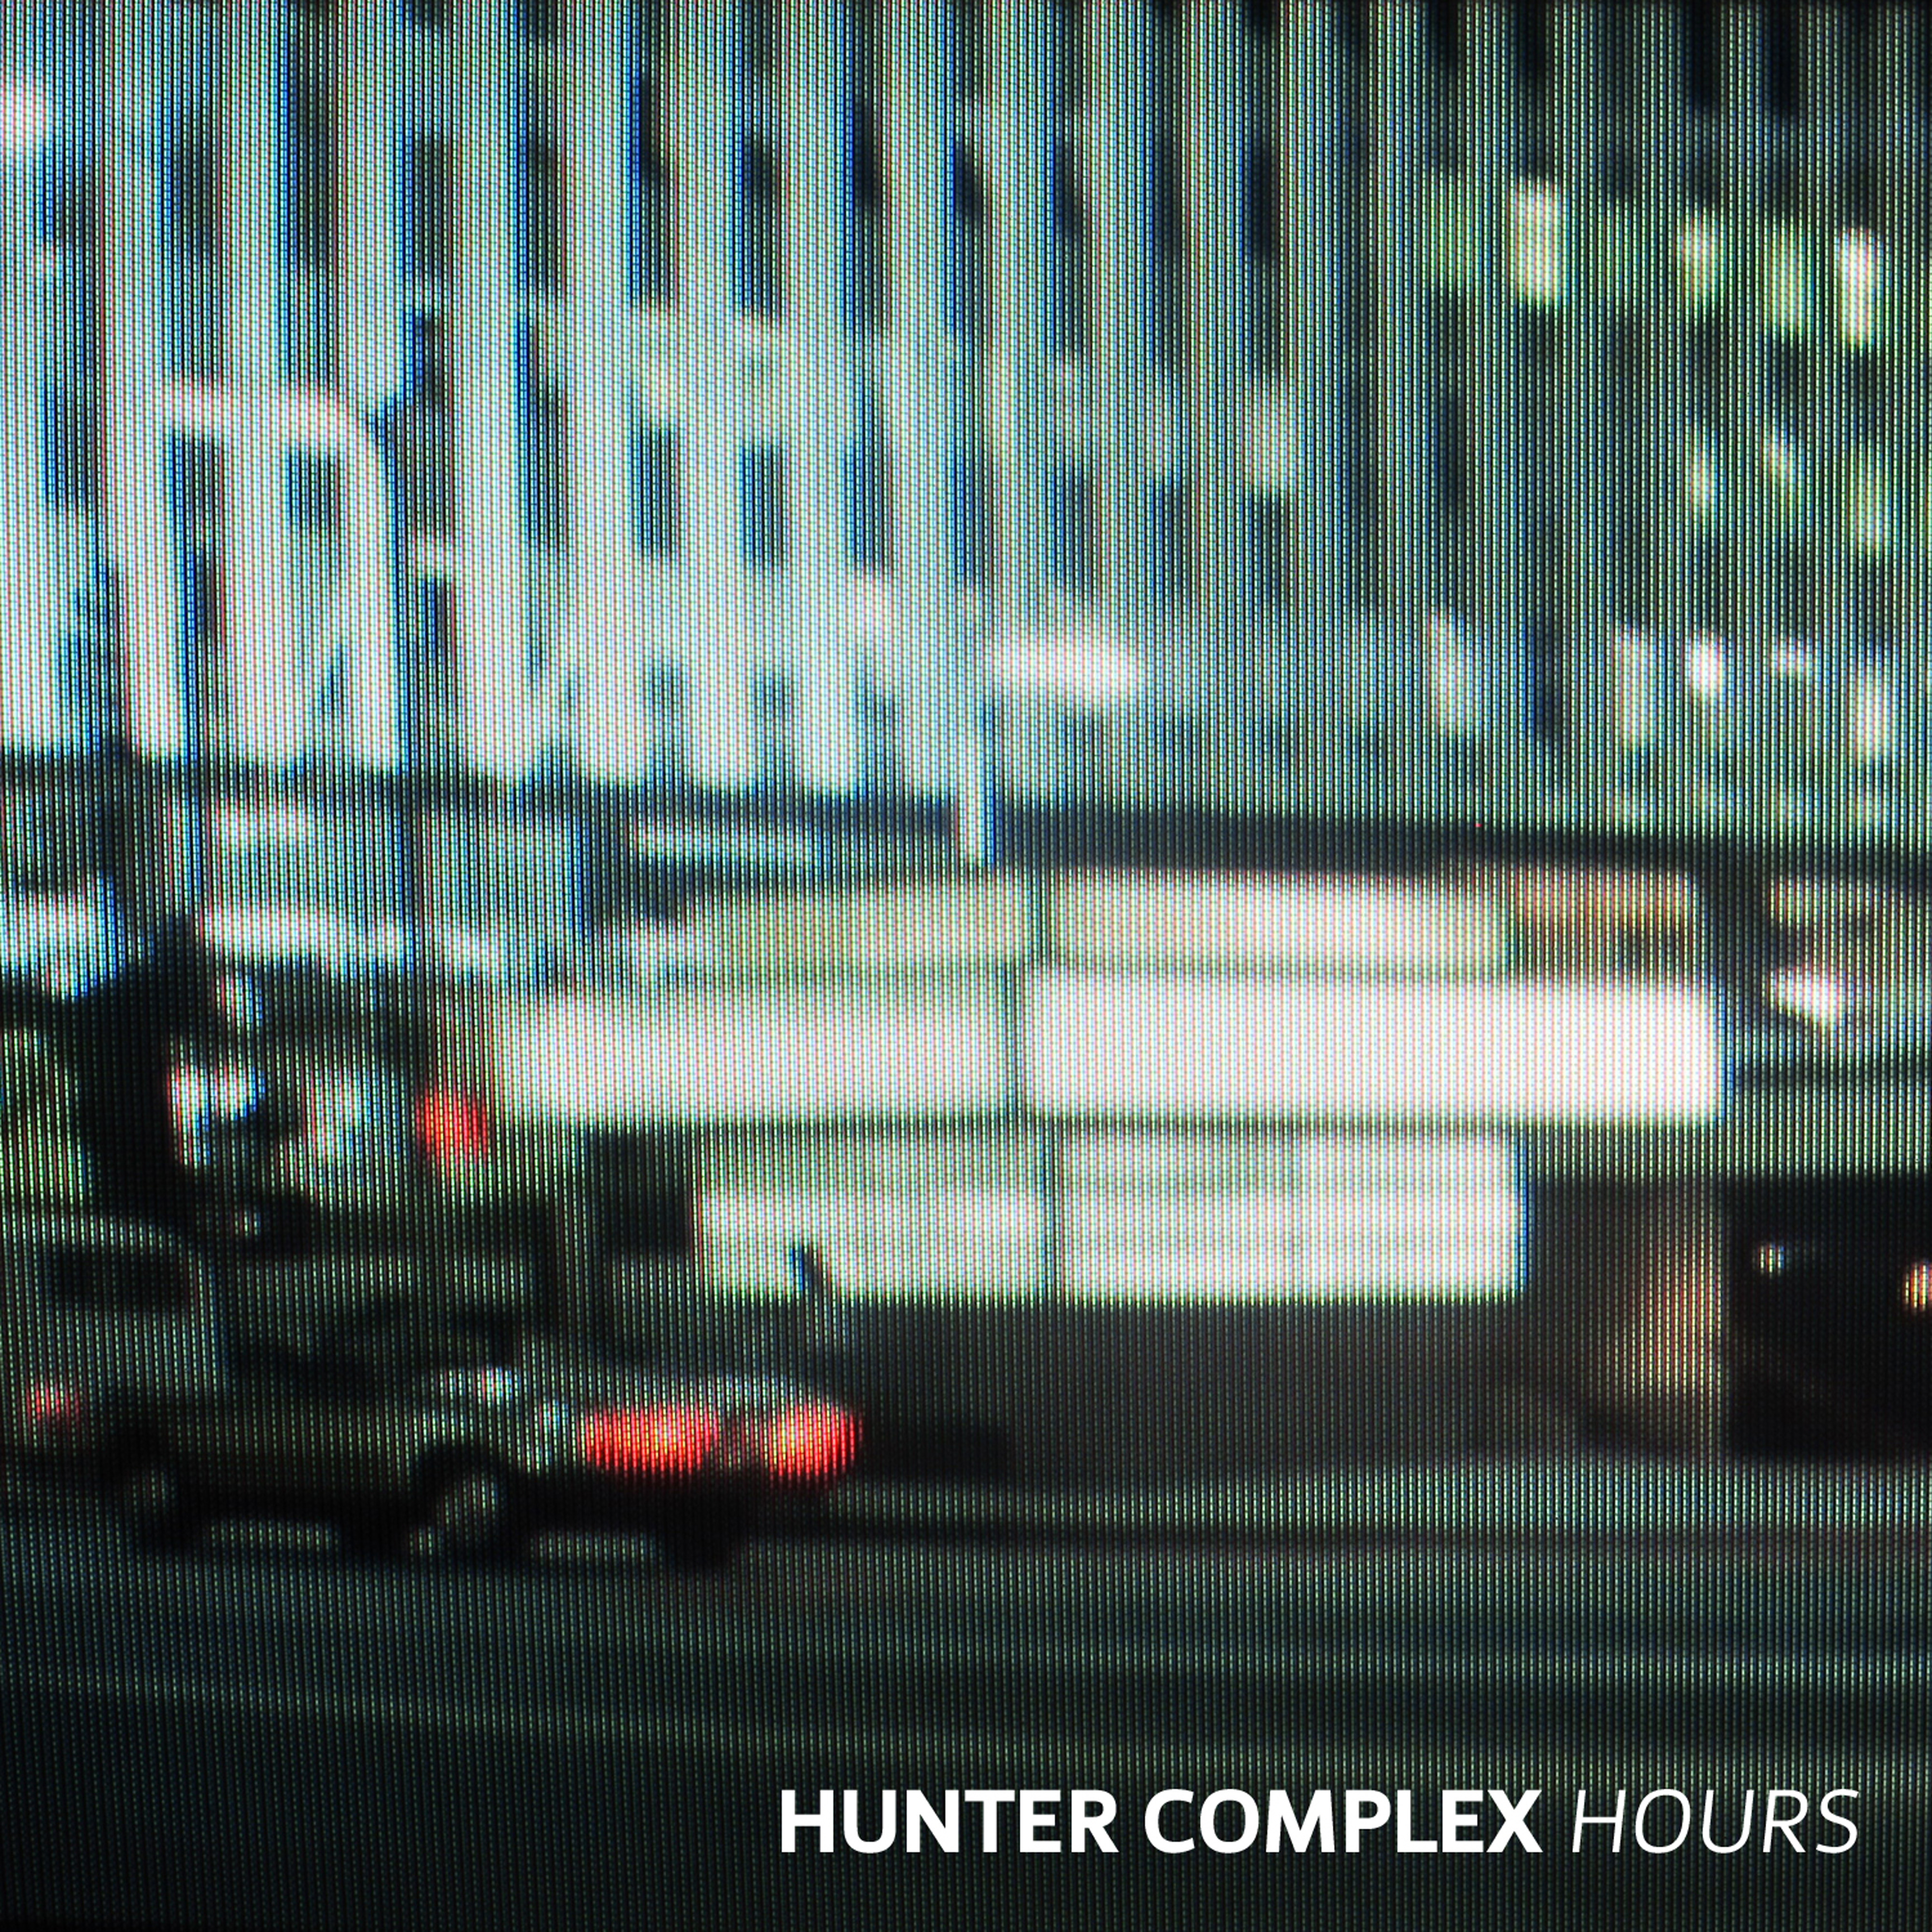 NM071: hunter complex - hours